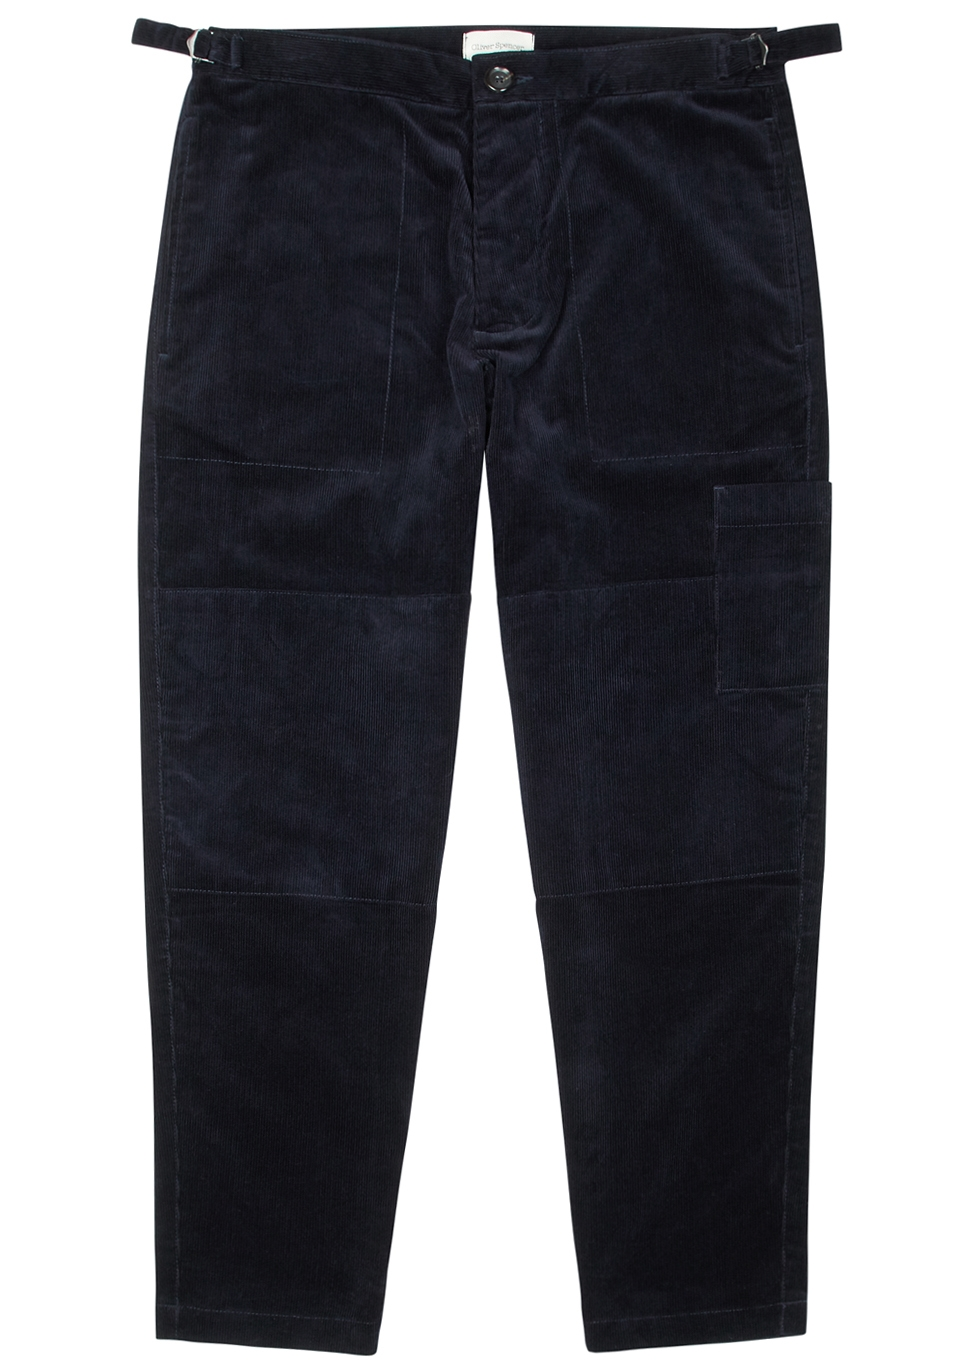 OLIVER SPENCER JUDO NAVY CORDUROY TROUSERS